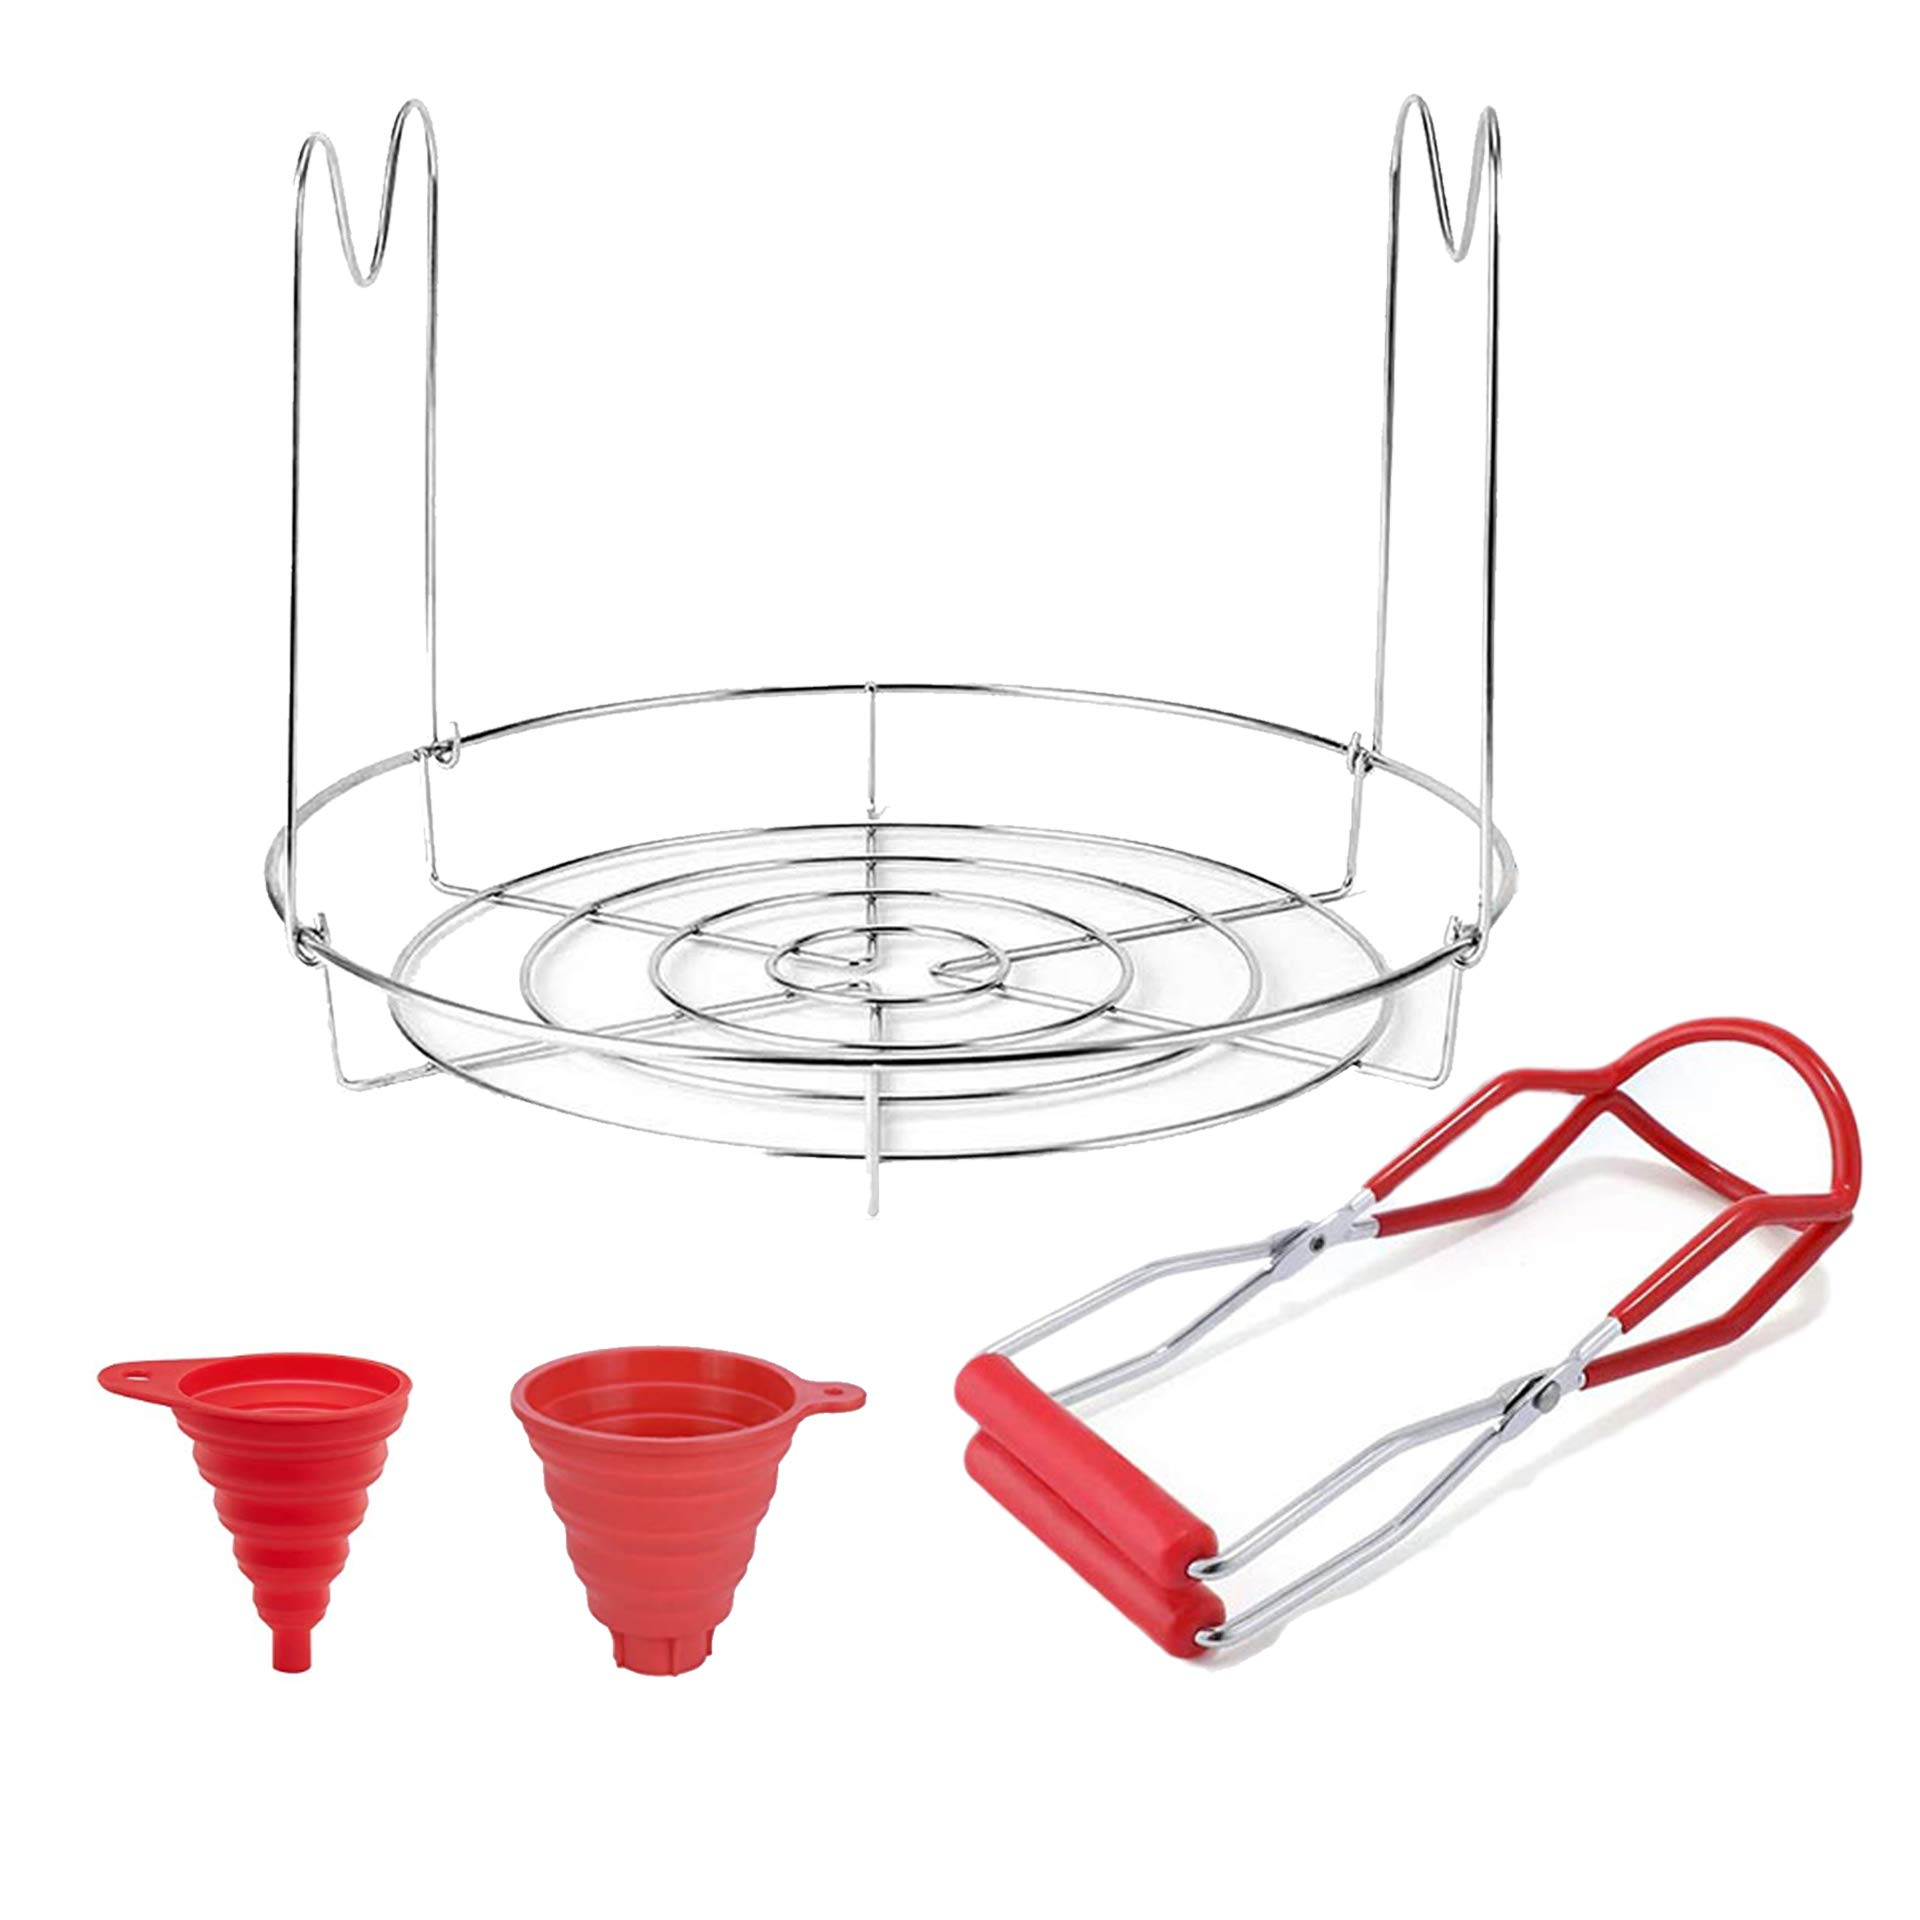 Canning Rack Kits-Canning Jar Rack Canning Funnel and Canning Lifter